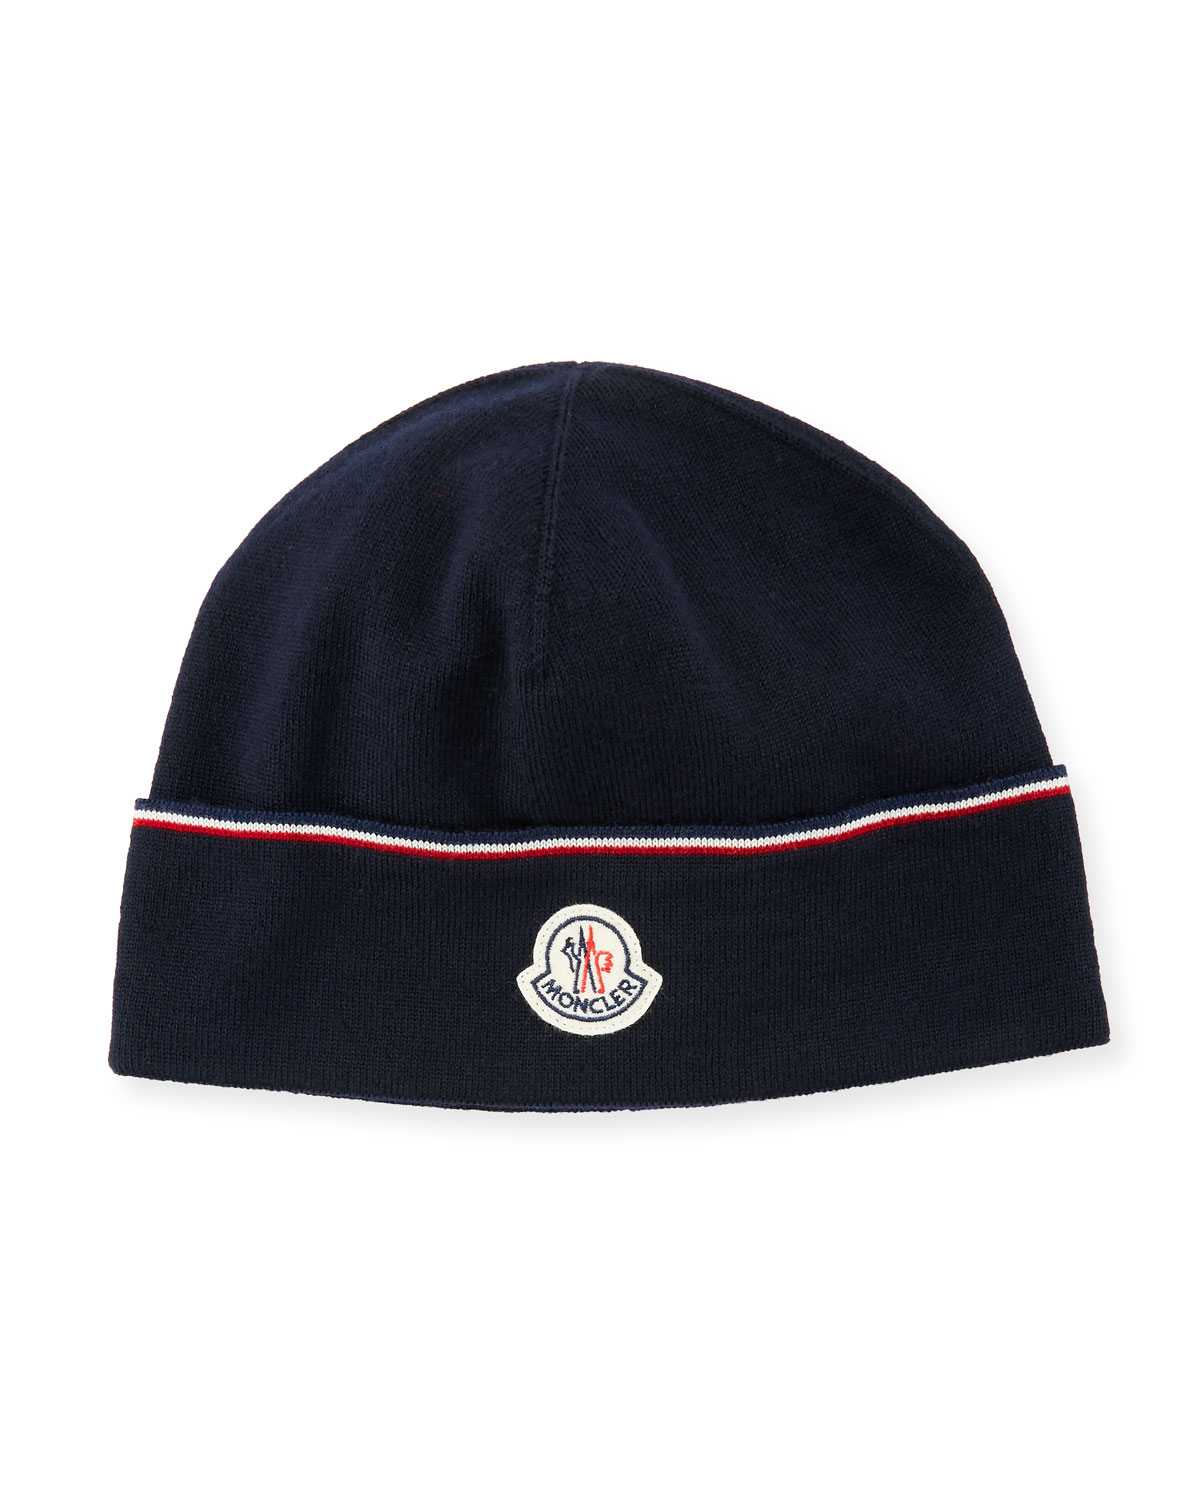 designer fashion f13da 3e30e Moncler Wool Striped Logo Beanie Hat, Navy